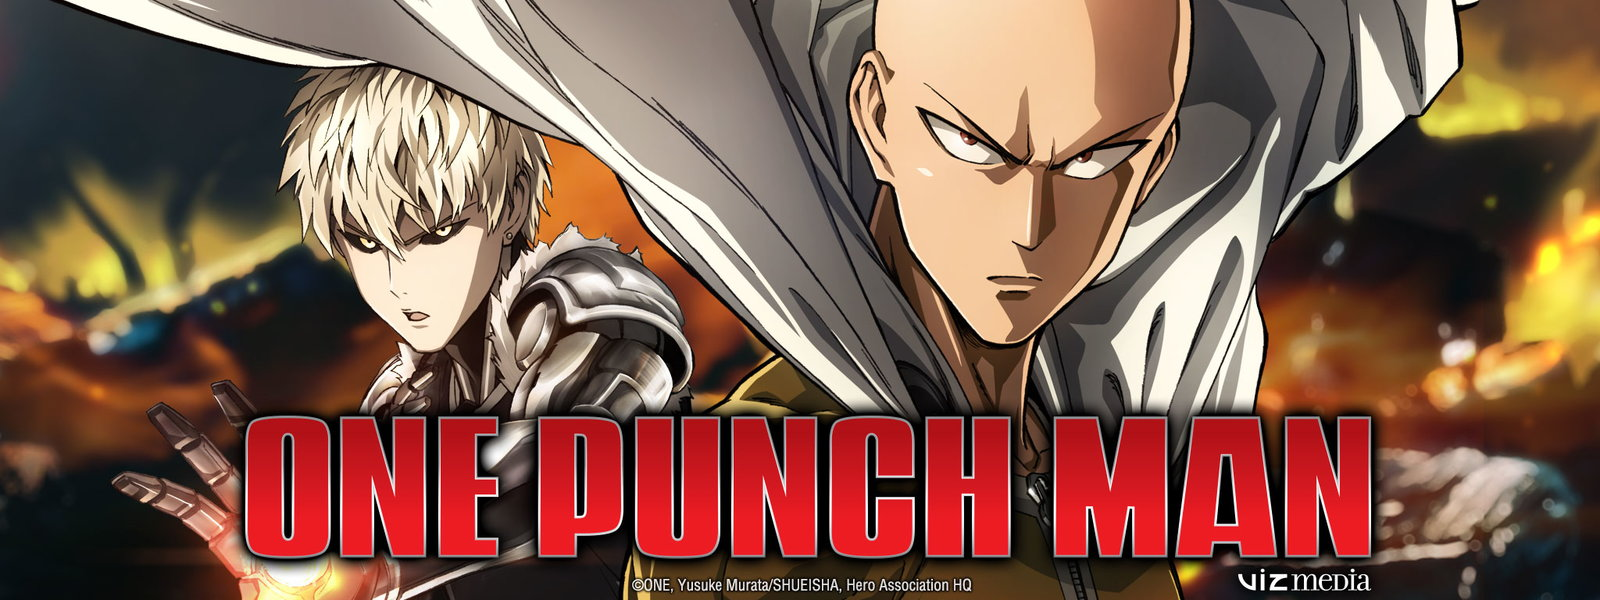 17 one punch man sub indo episode One Punch